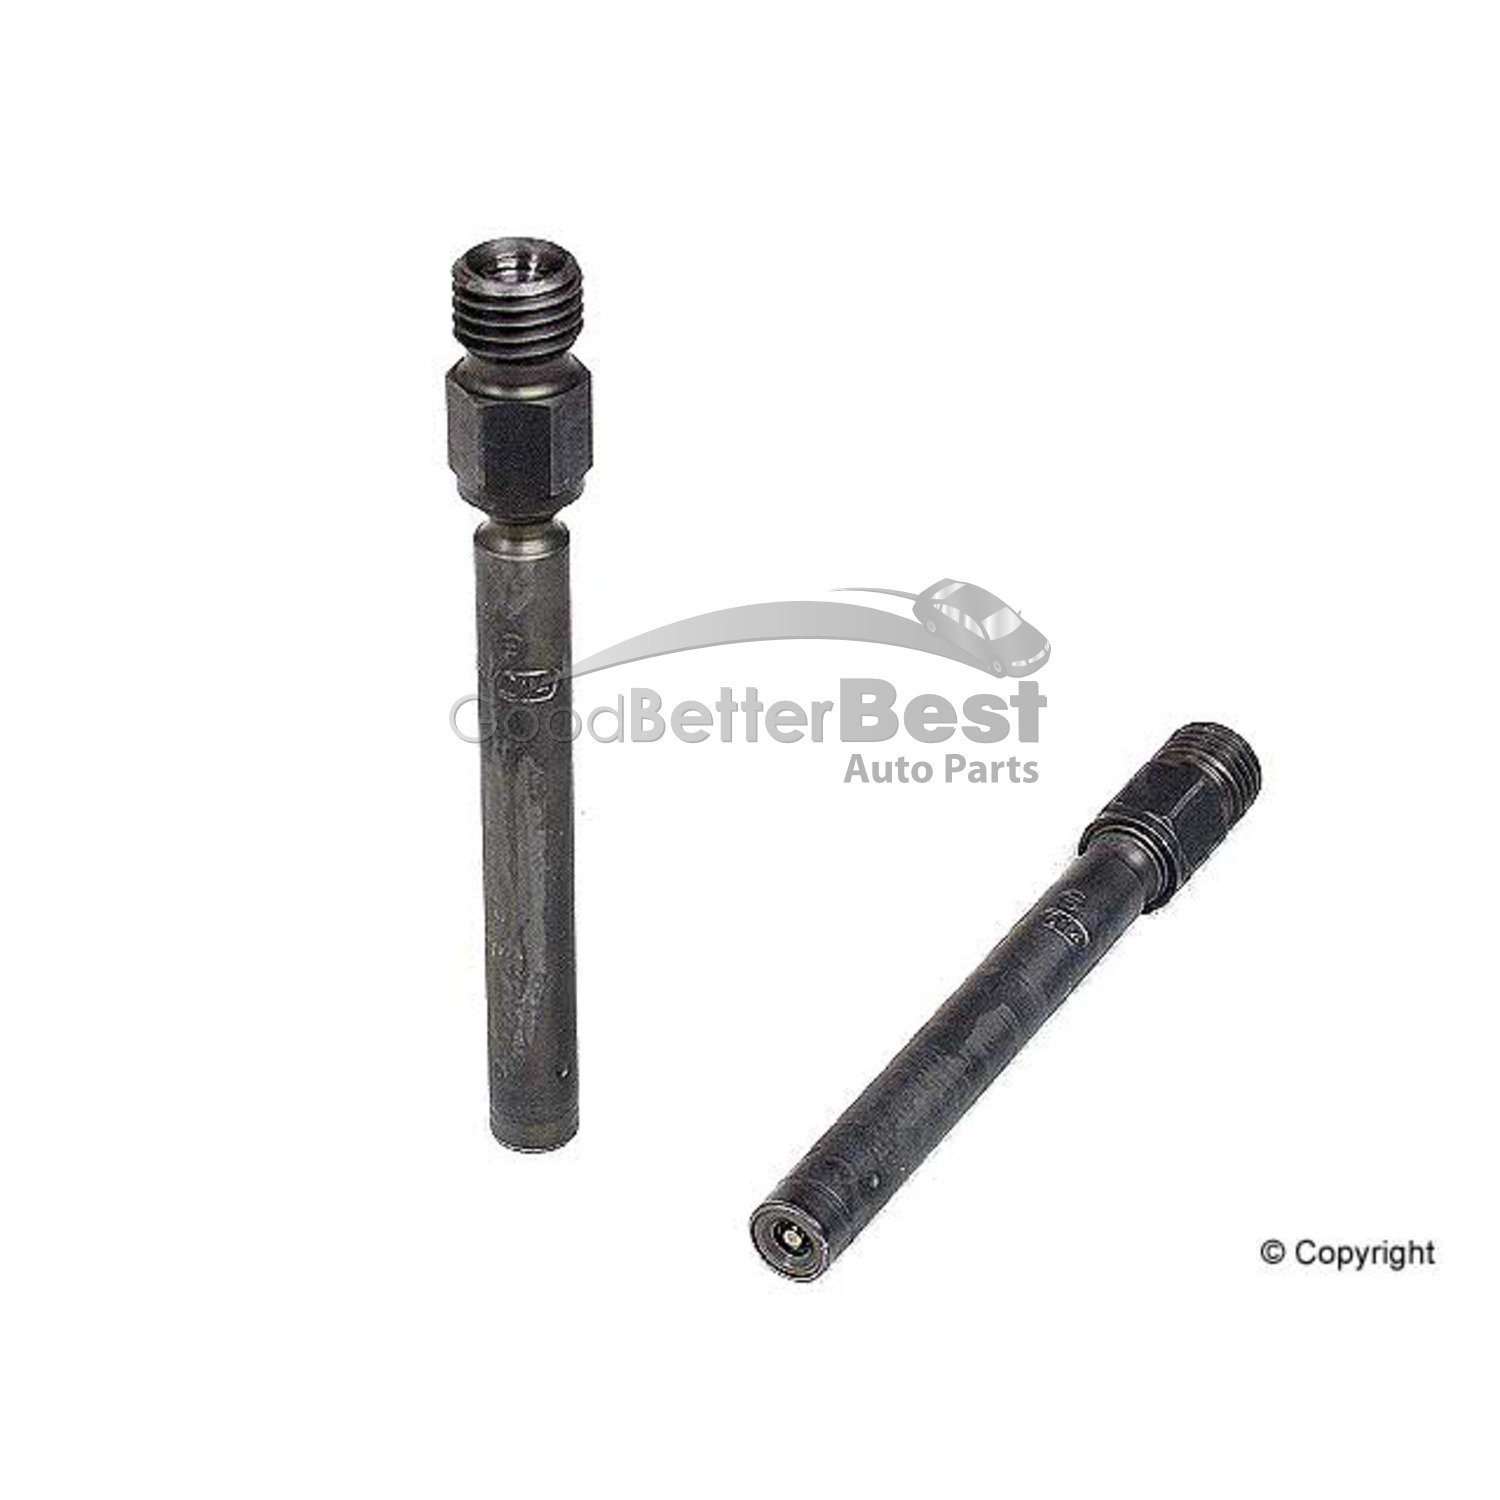 For Porsche 911 Saab 900 99 Fuel Injector Bosch 0437502004